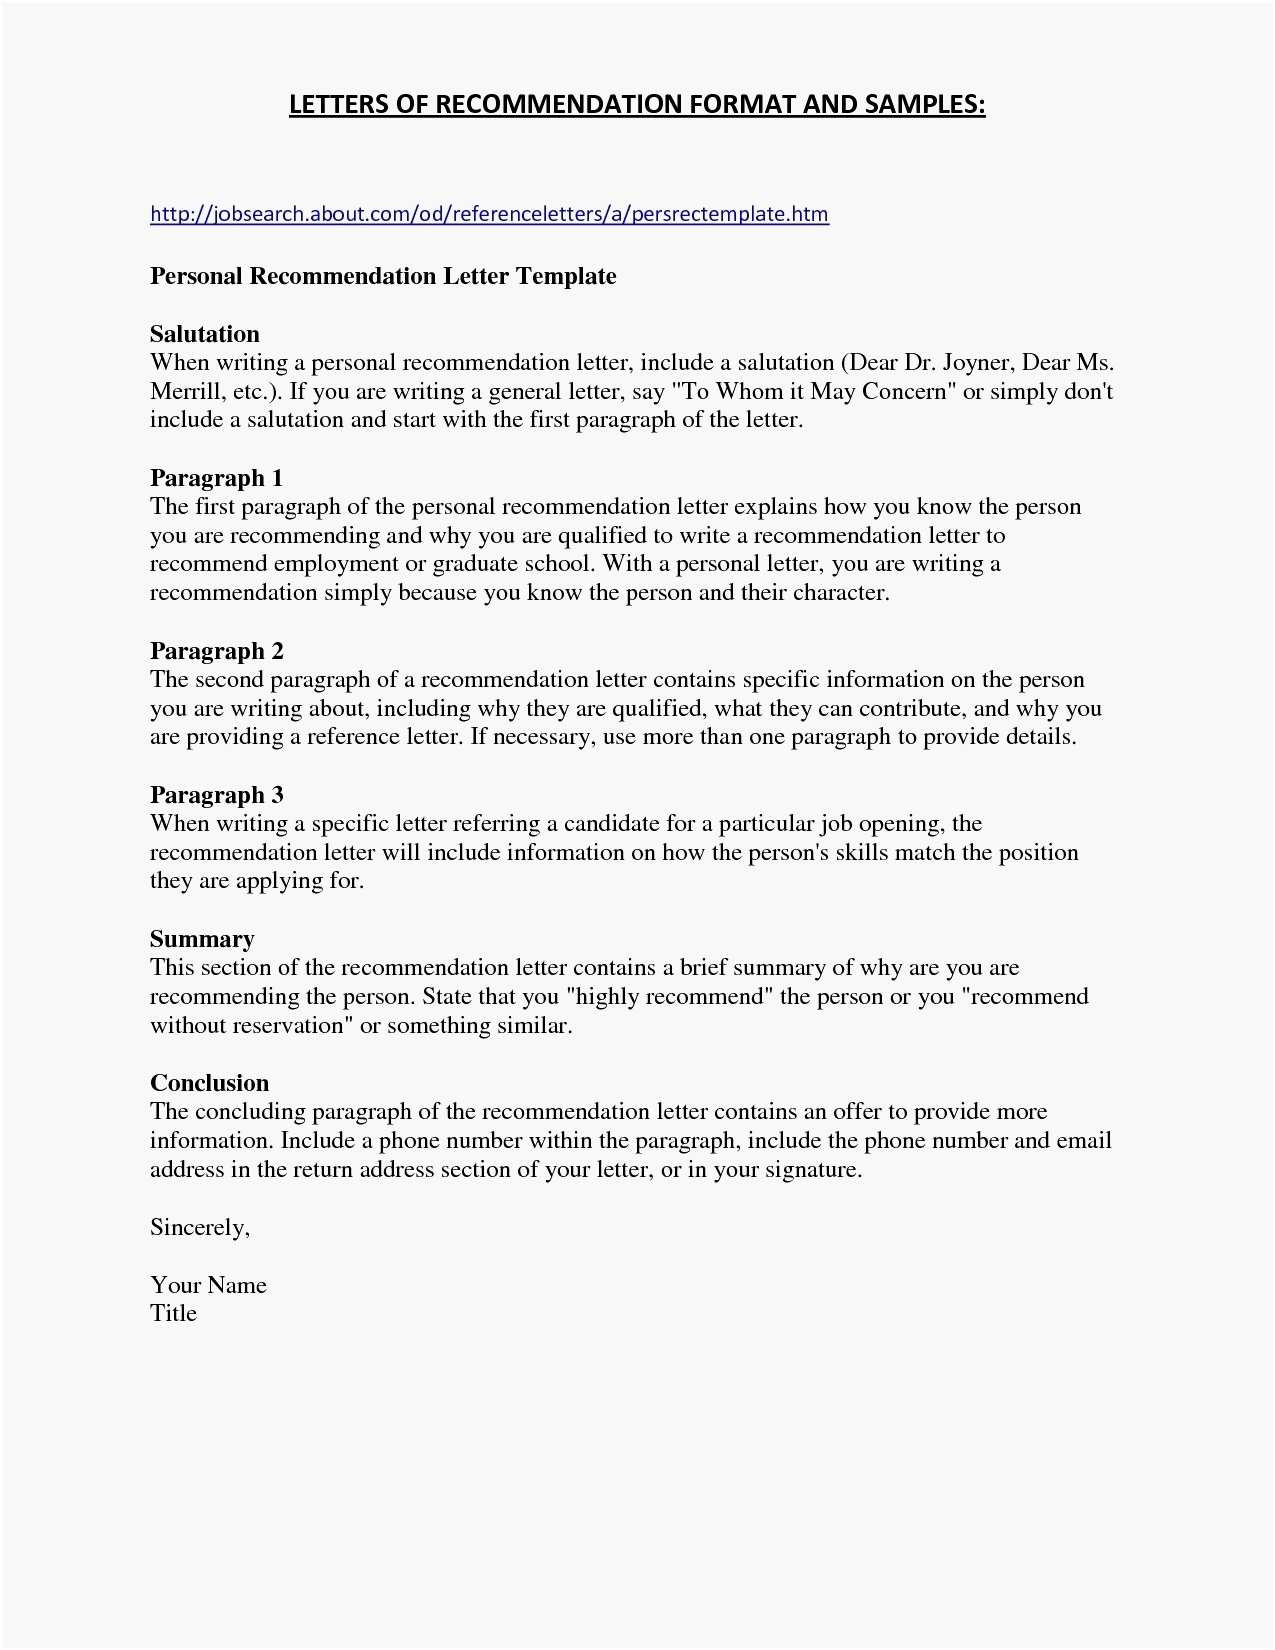 letter to hoa template example-Resume Cover Page Template Free Unique Resume Cover Letter Template Homeowners Association Letter Templates 13-s